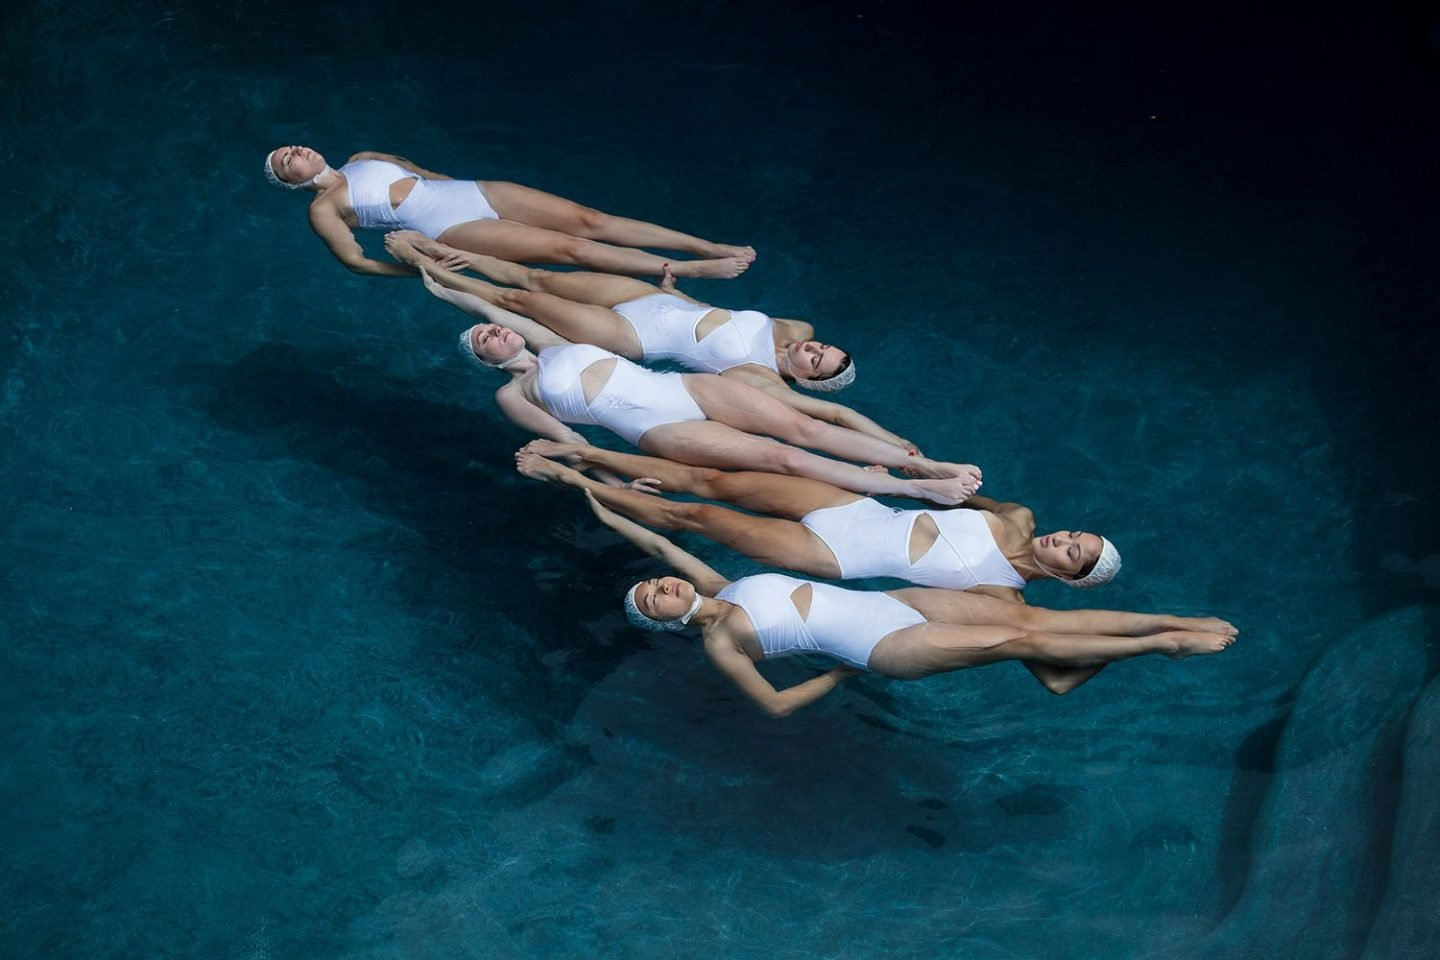 iGNANT_Photography_Emma_Hartvig_The_Swimmers_1